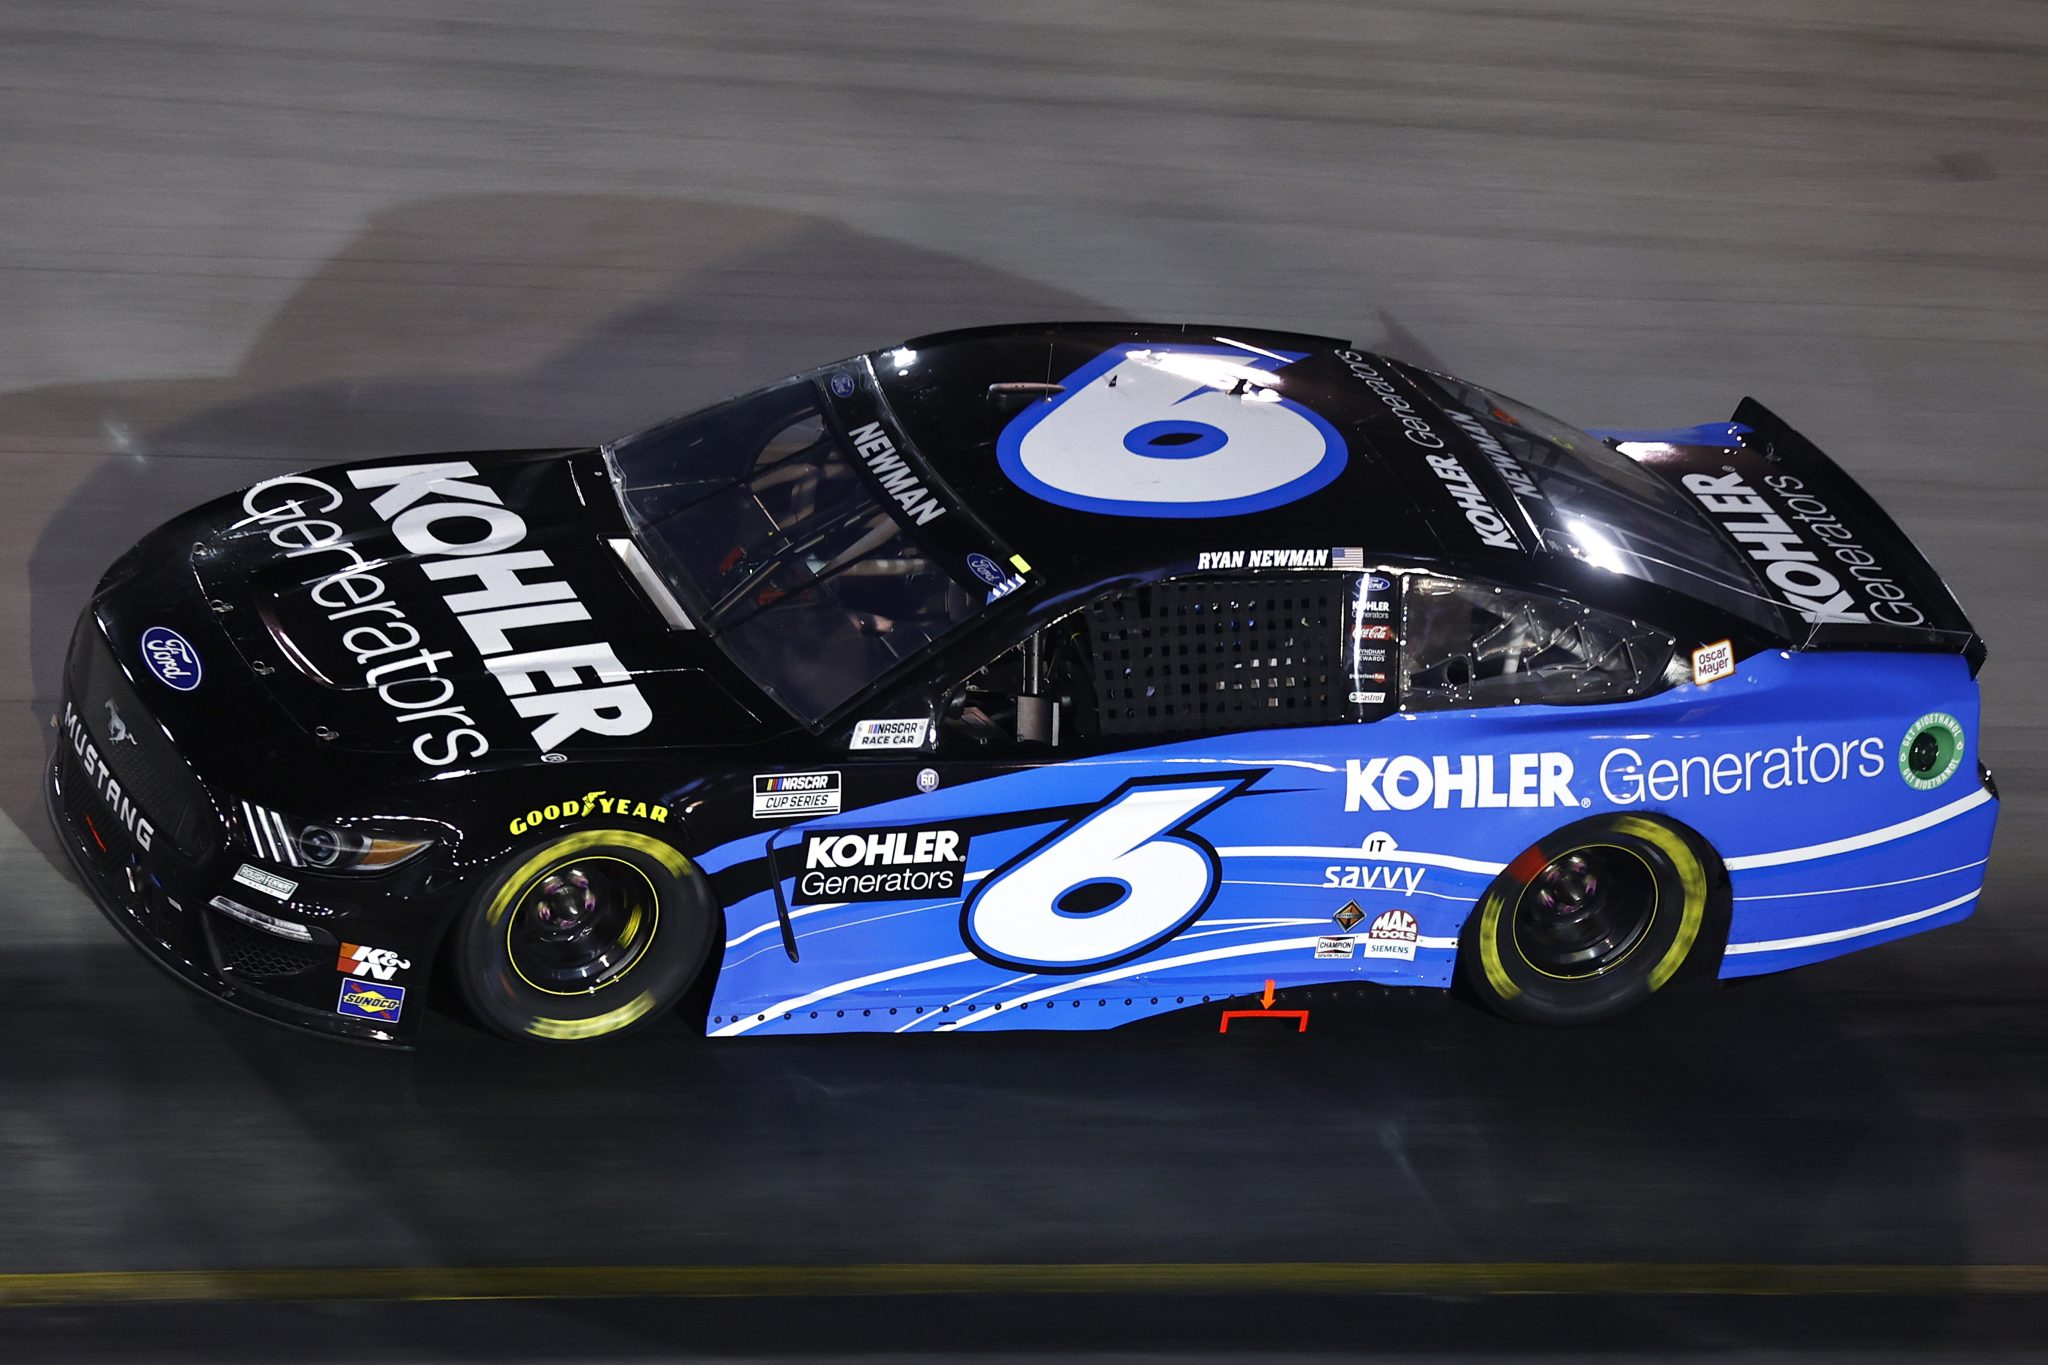 BRISTOL, TENNESSEE - SEPTEMBER 18: Ryan Newman, driver of the #6 Kohler Generators Ford, drives during the NASCAR Cup Series Bass Pro Shops Night Race at Bristol Motor Speedway on September 18, 2021 in Bristol, Tennessee. (Photo by Jared C. Tilton/Getty Images) | Getty Images